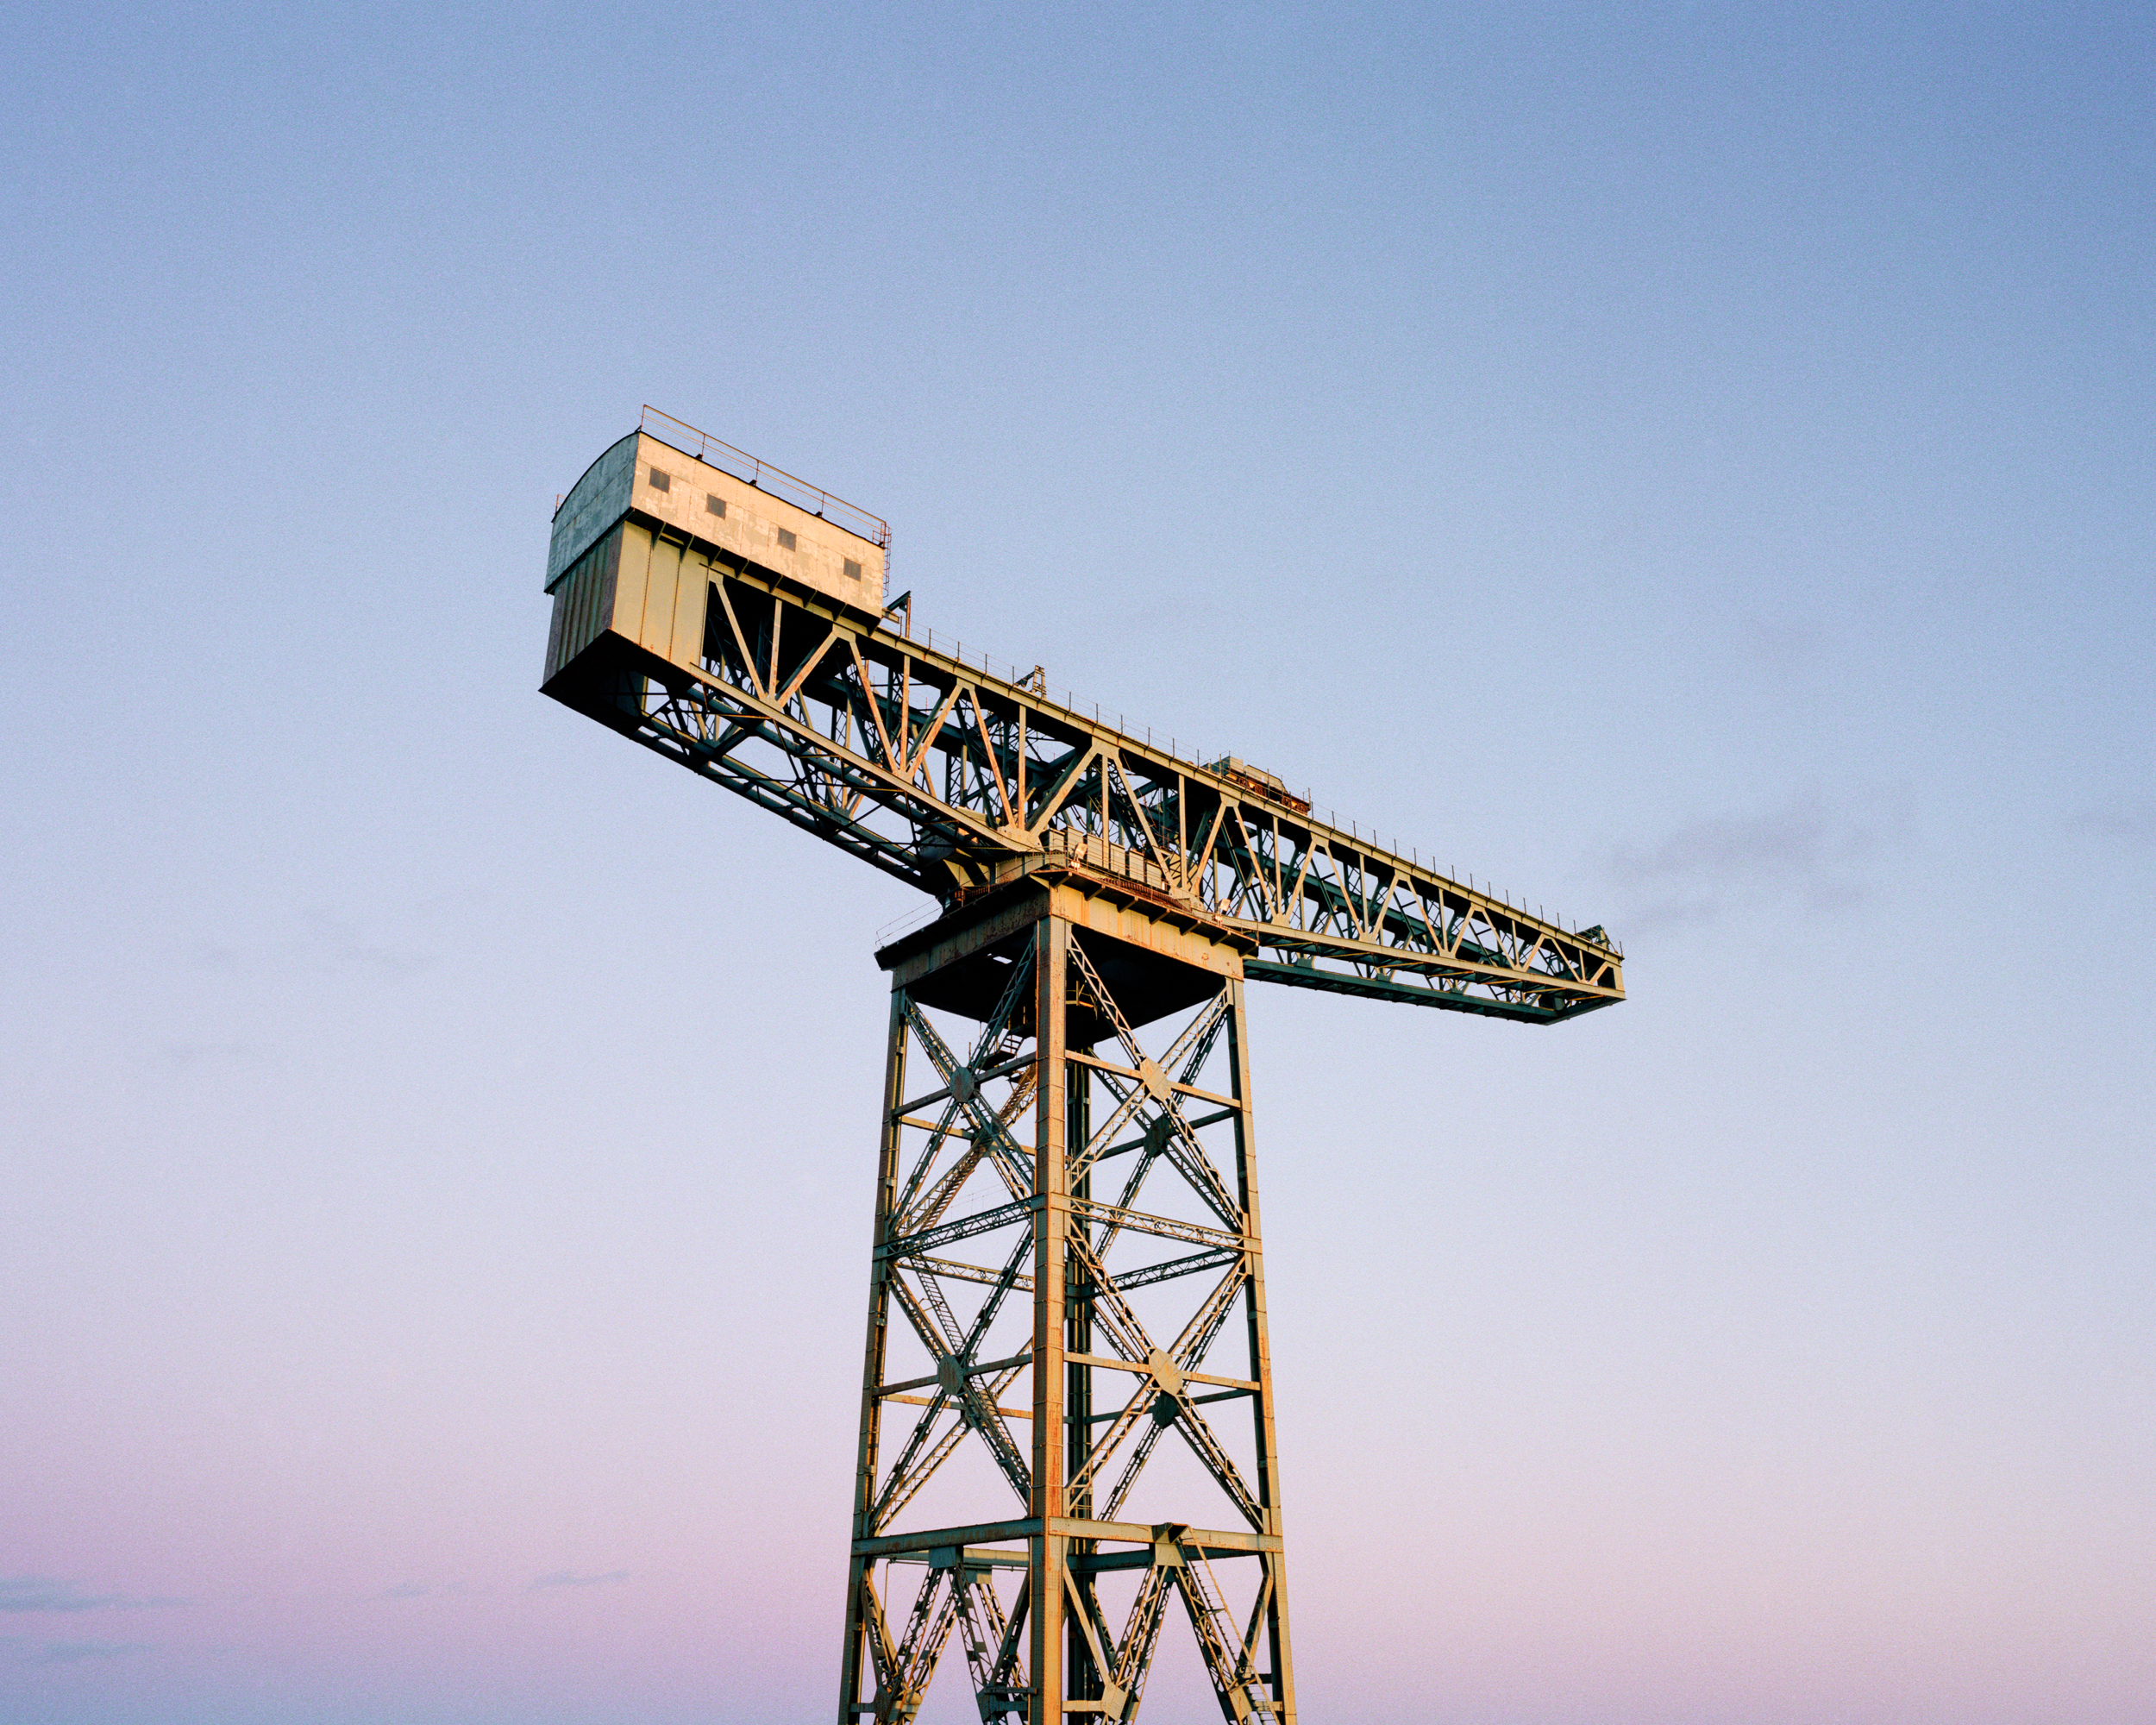 Shipyard Crane, greenock, documentary scotland, documentary photography, mat hay, freelance photographer, photographer edinburgh, london, scotland, highlands, landscapes, portraits, NHS,_.jpg